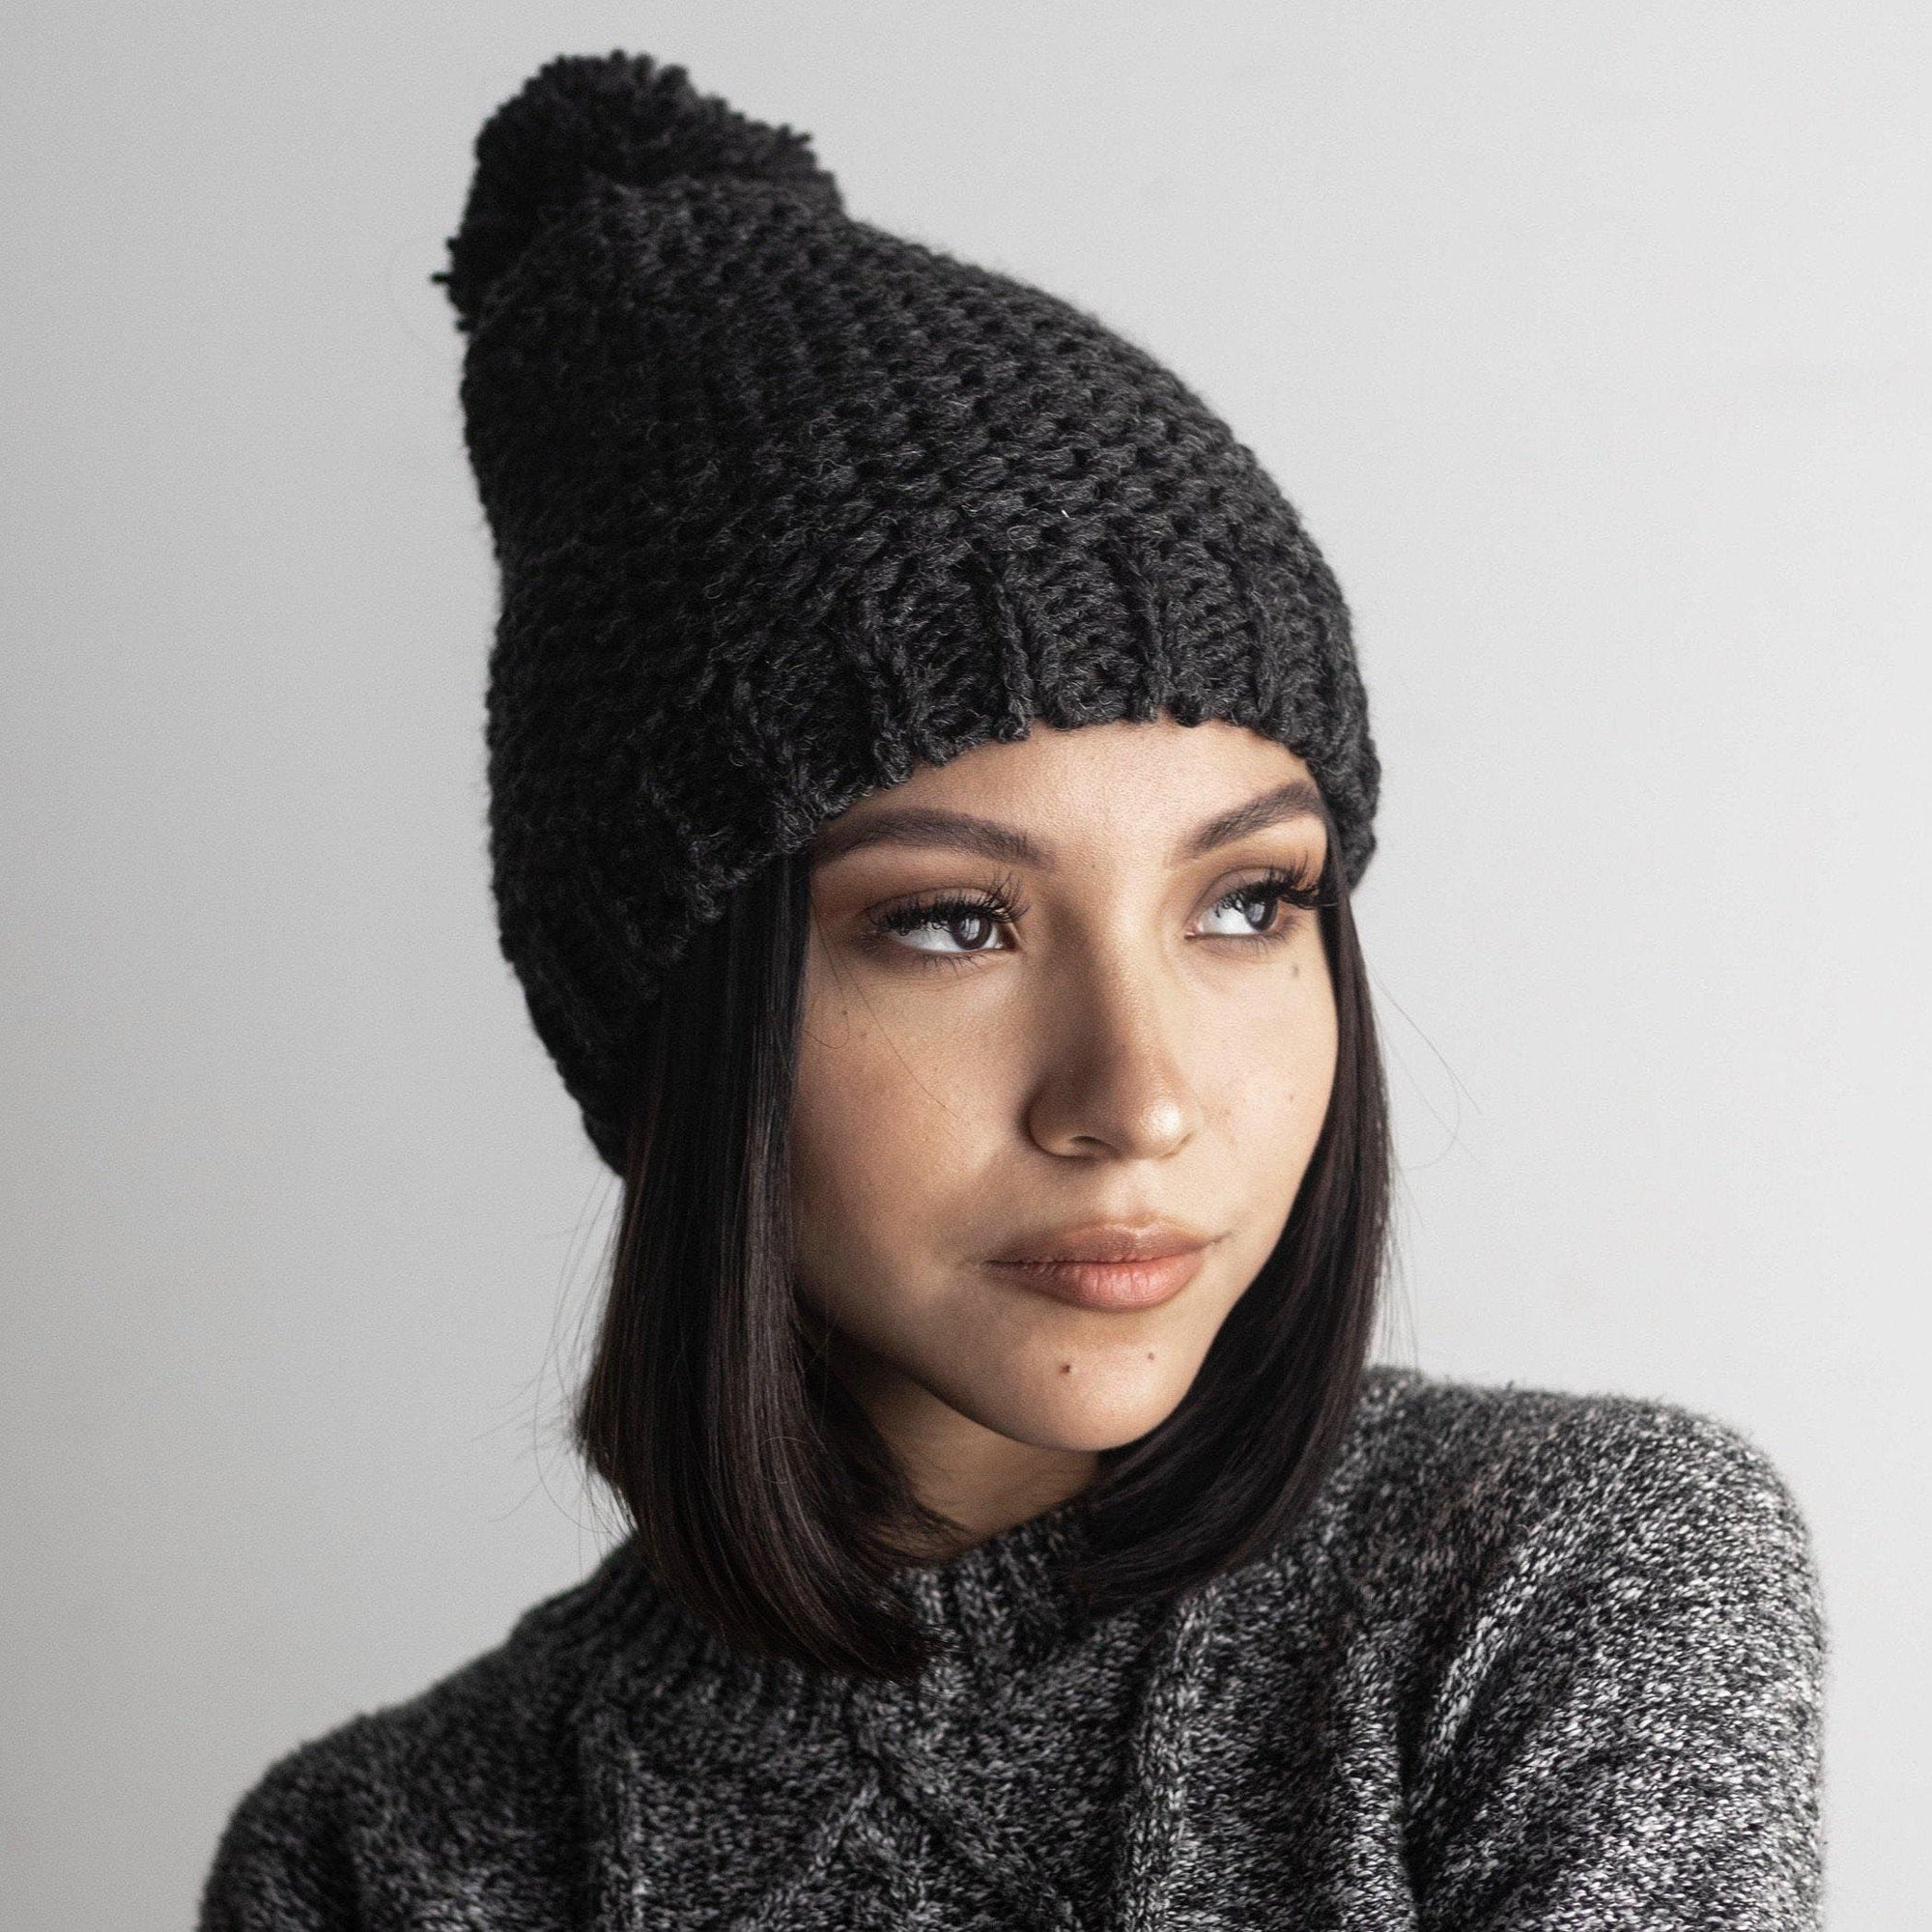 GIGI PIP Hats for Women- Mitzi Beanie - Charcoal-Beanie